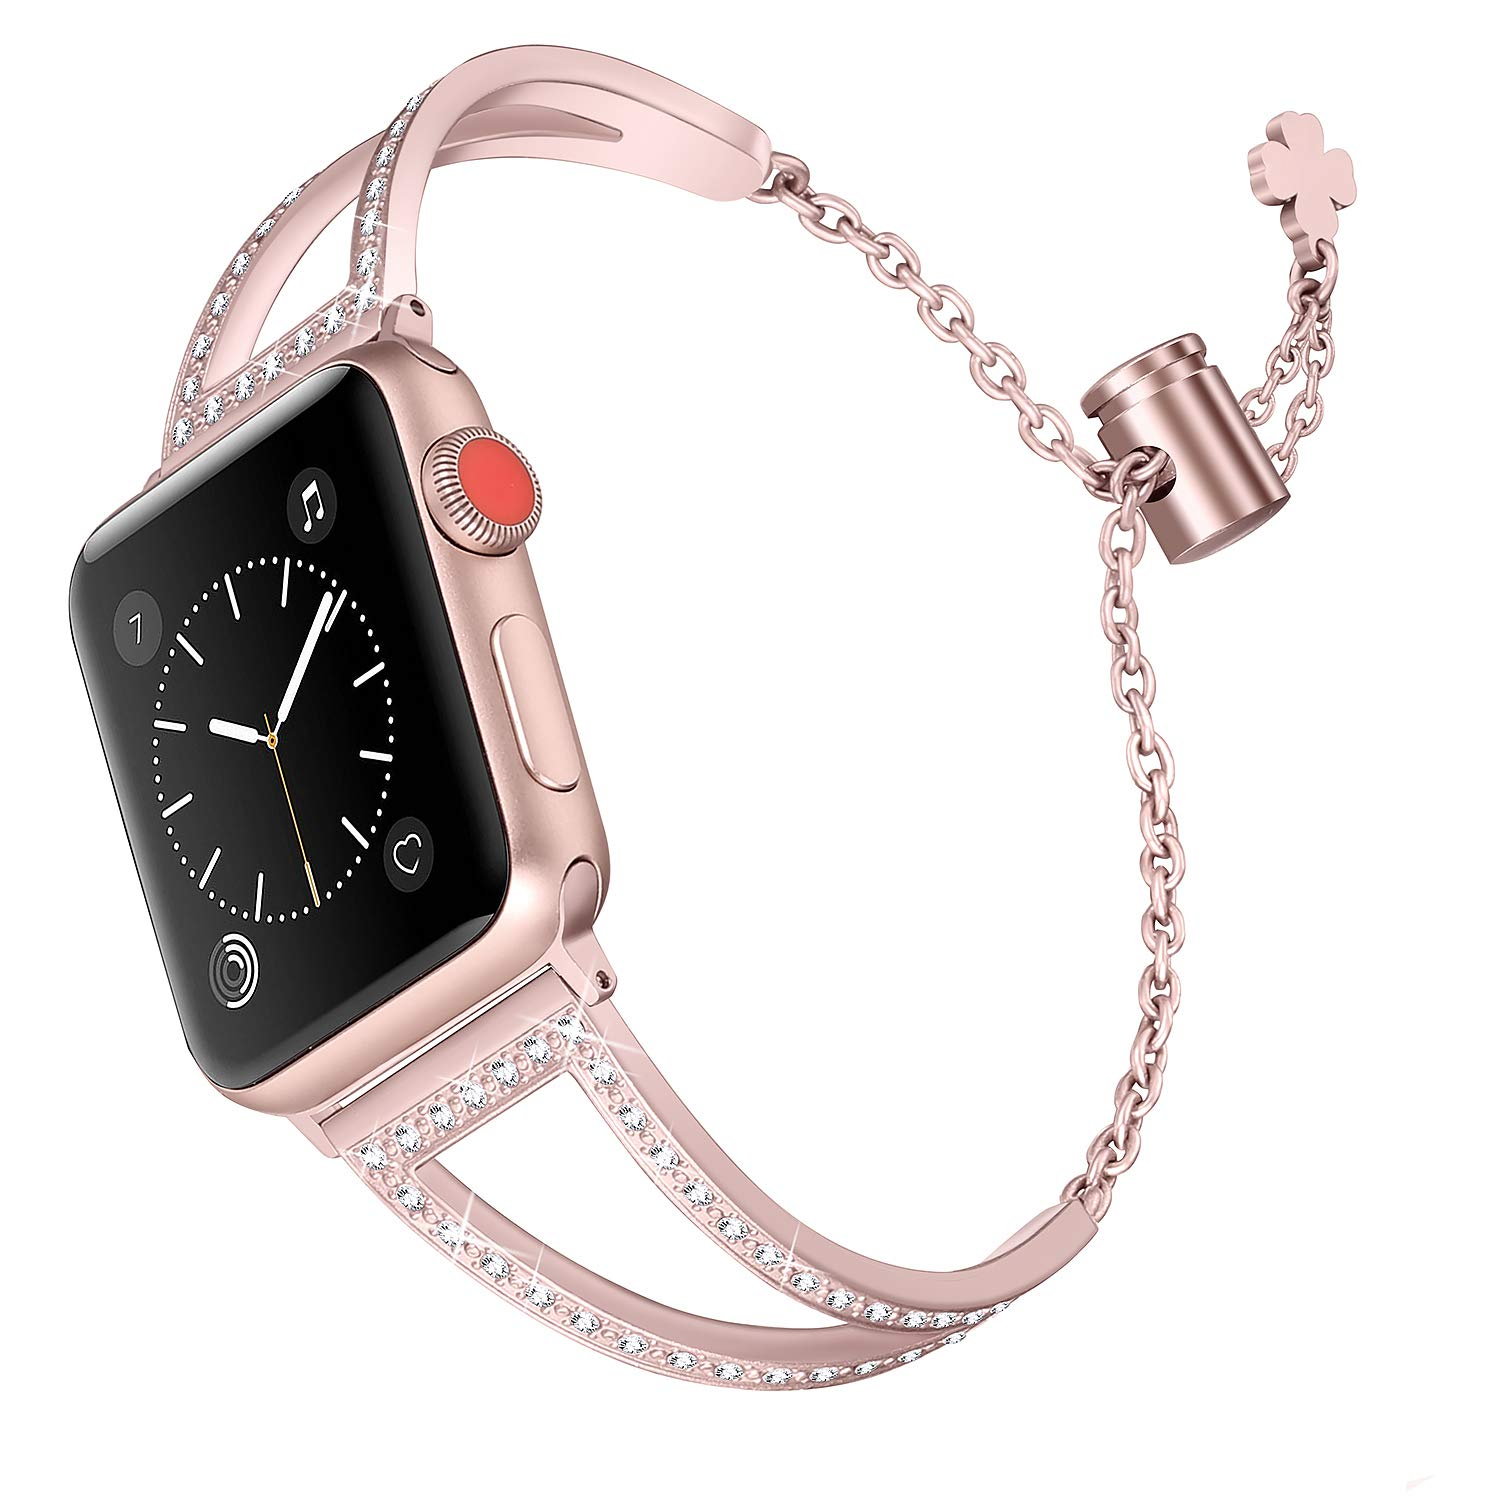 Secbolt Bling Bands Compatible Apple Watch Band 42mm 44mm Iwatch Series 4/3/2/1, Women Stainless Steel Metal Dress Jewelry Bracelet Bangle Wristband, Rose Gold